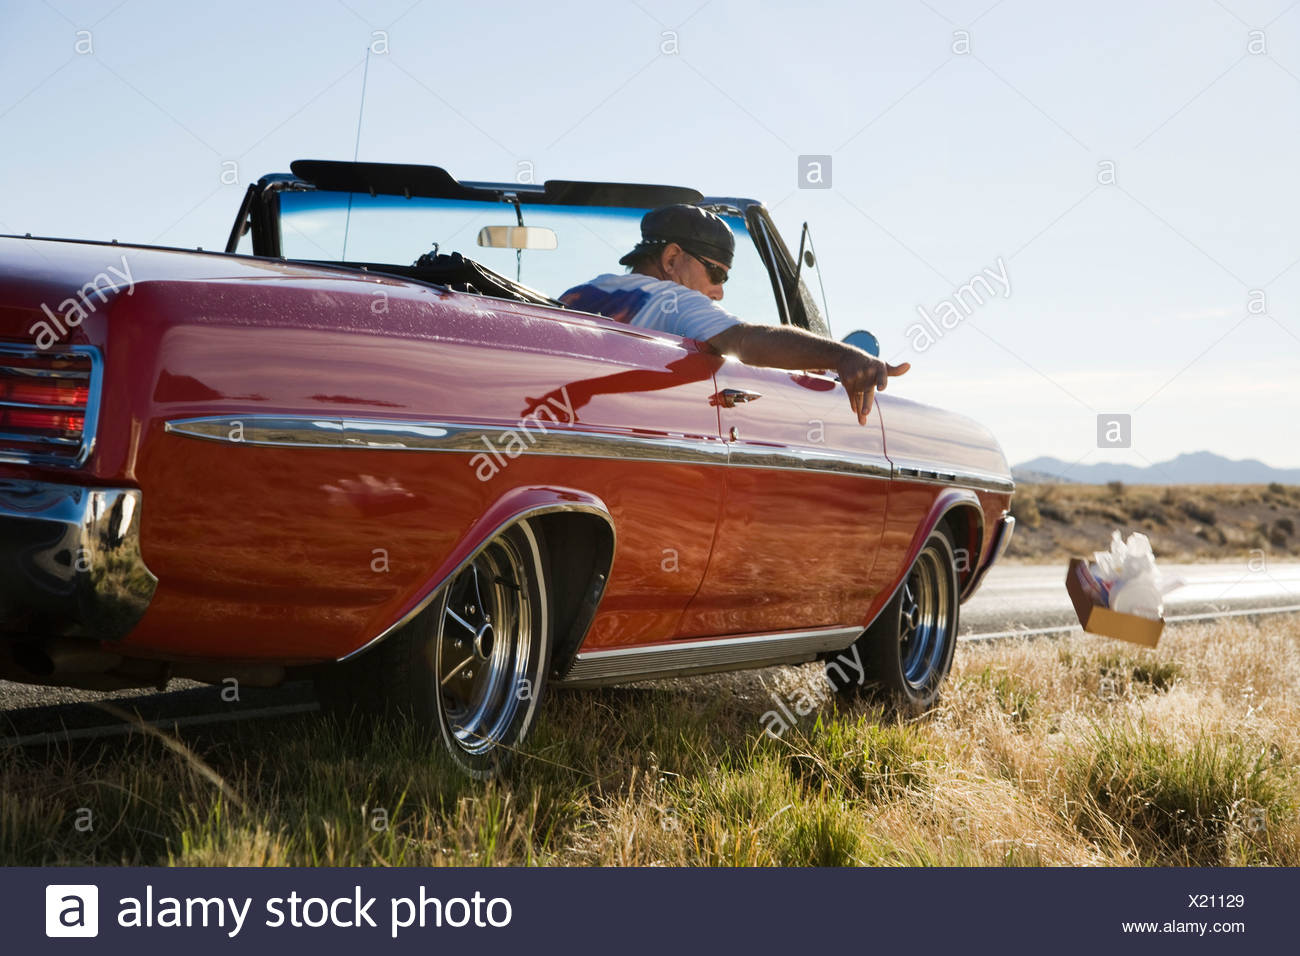 man littering out of a car - Stock Image